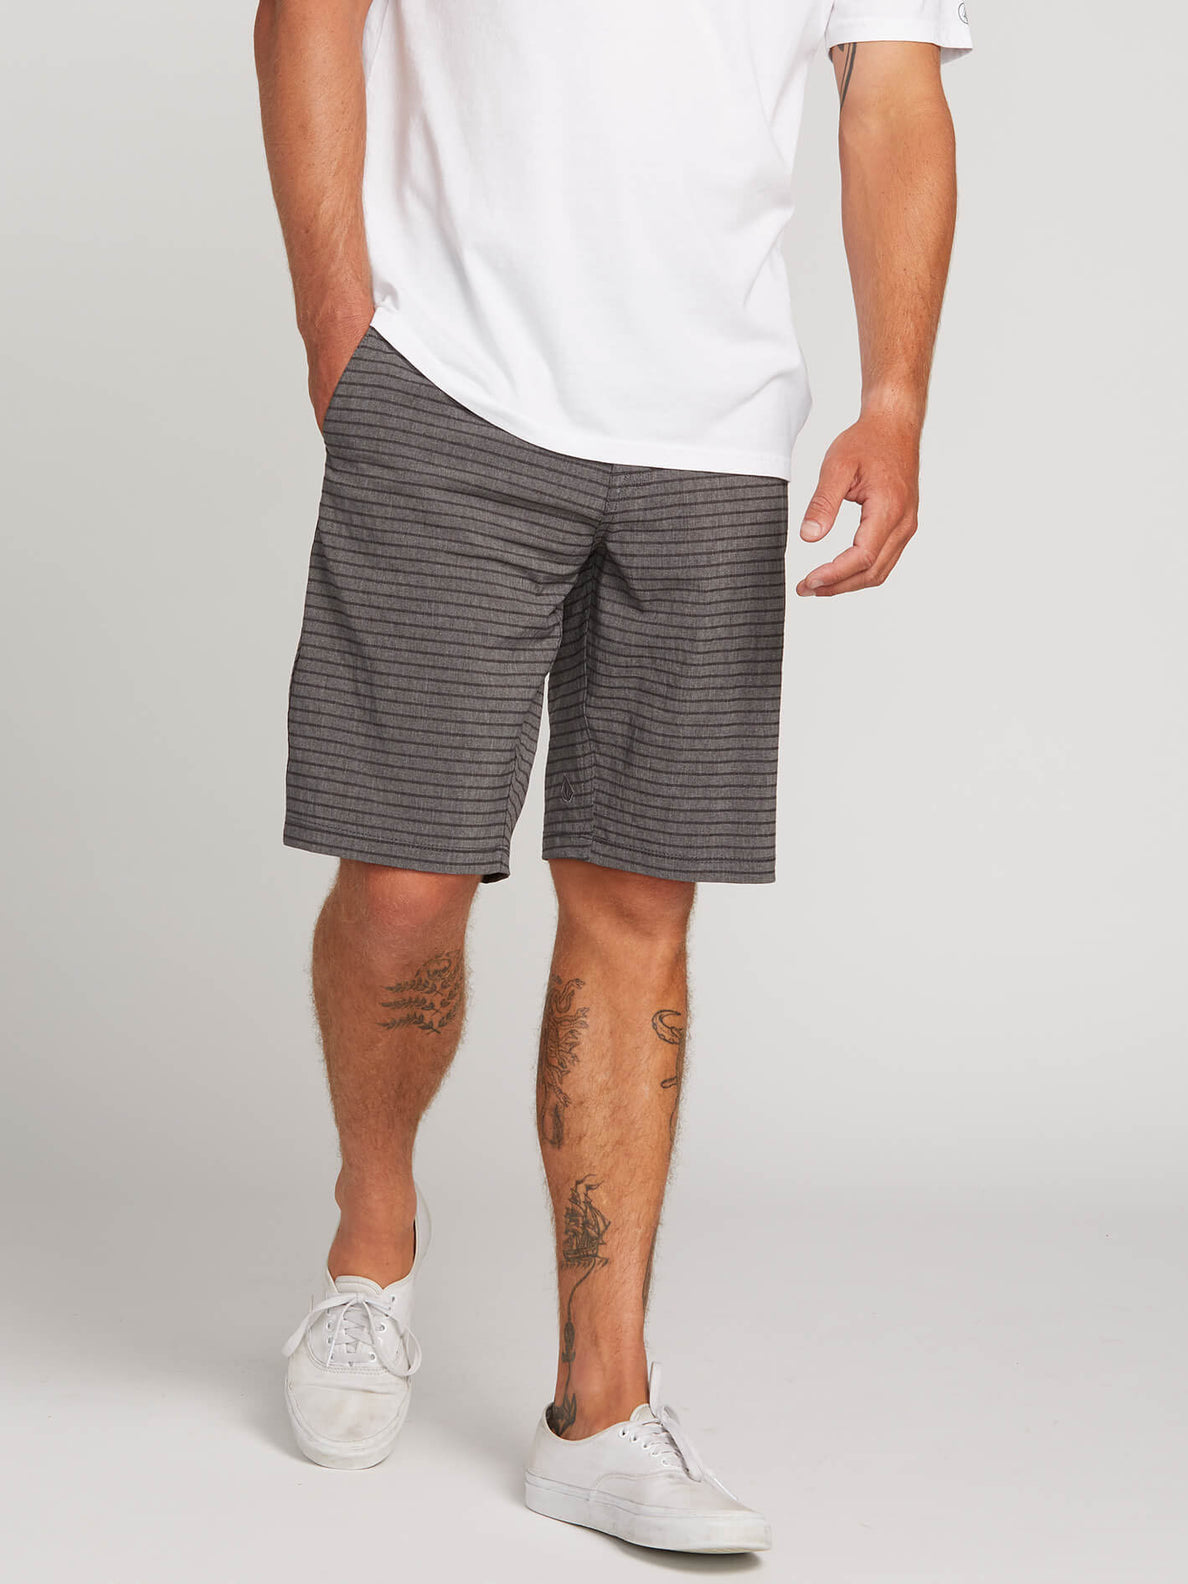 04543d019b Frickin Surf N' Turf Mix Hybrid Shorts In Charcoal Grey, ...